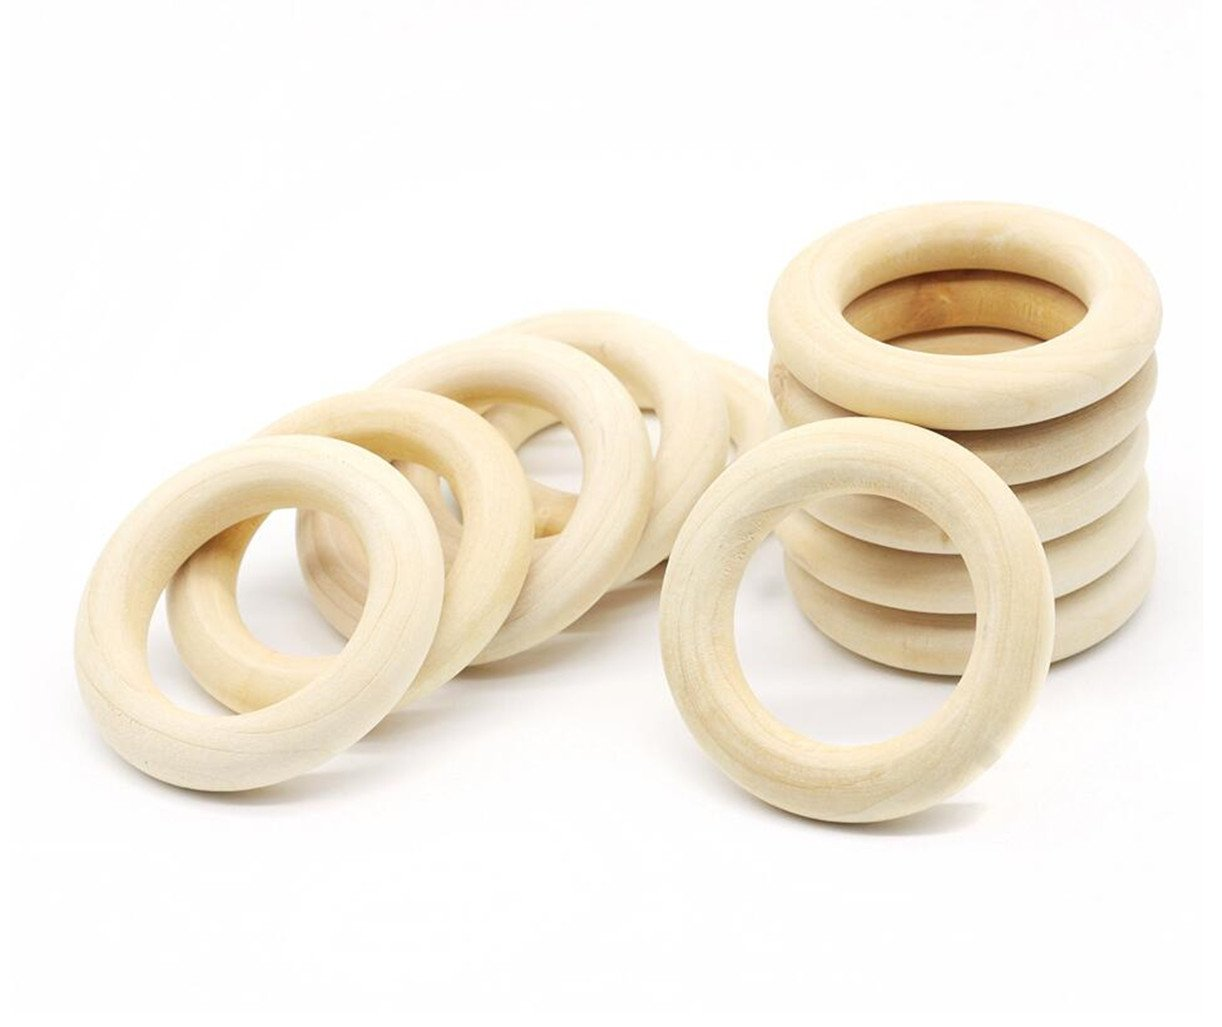 CHENGYIDA 100 Pieces DIY natural round wooden rings, 2.6Inch 65mmmm wooden rings,unfinished teething nursing toy